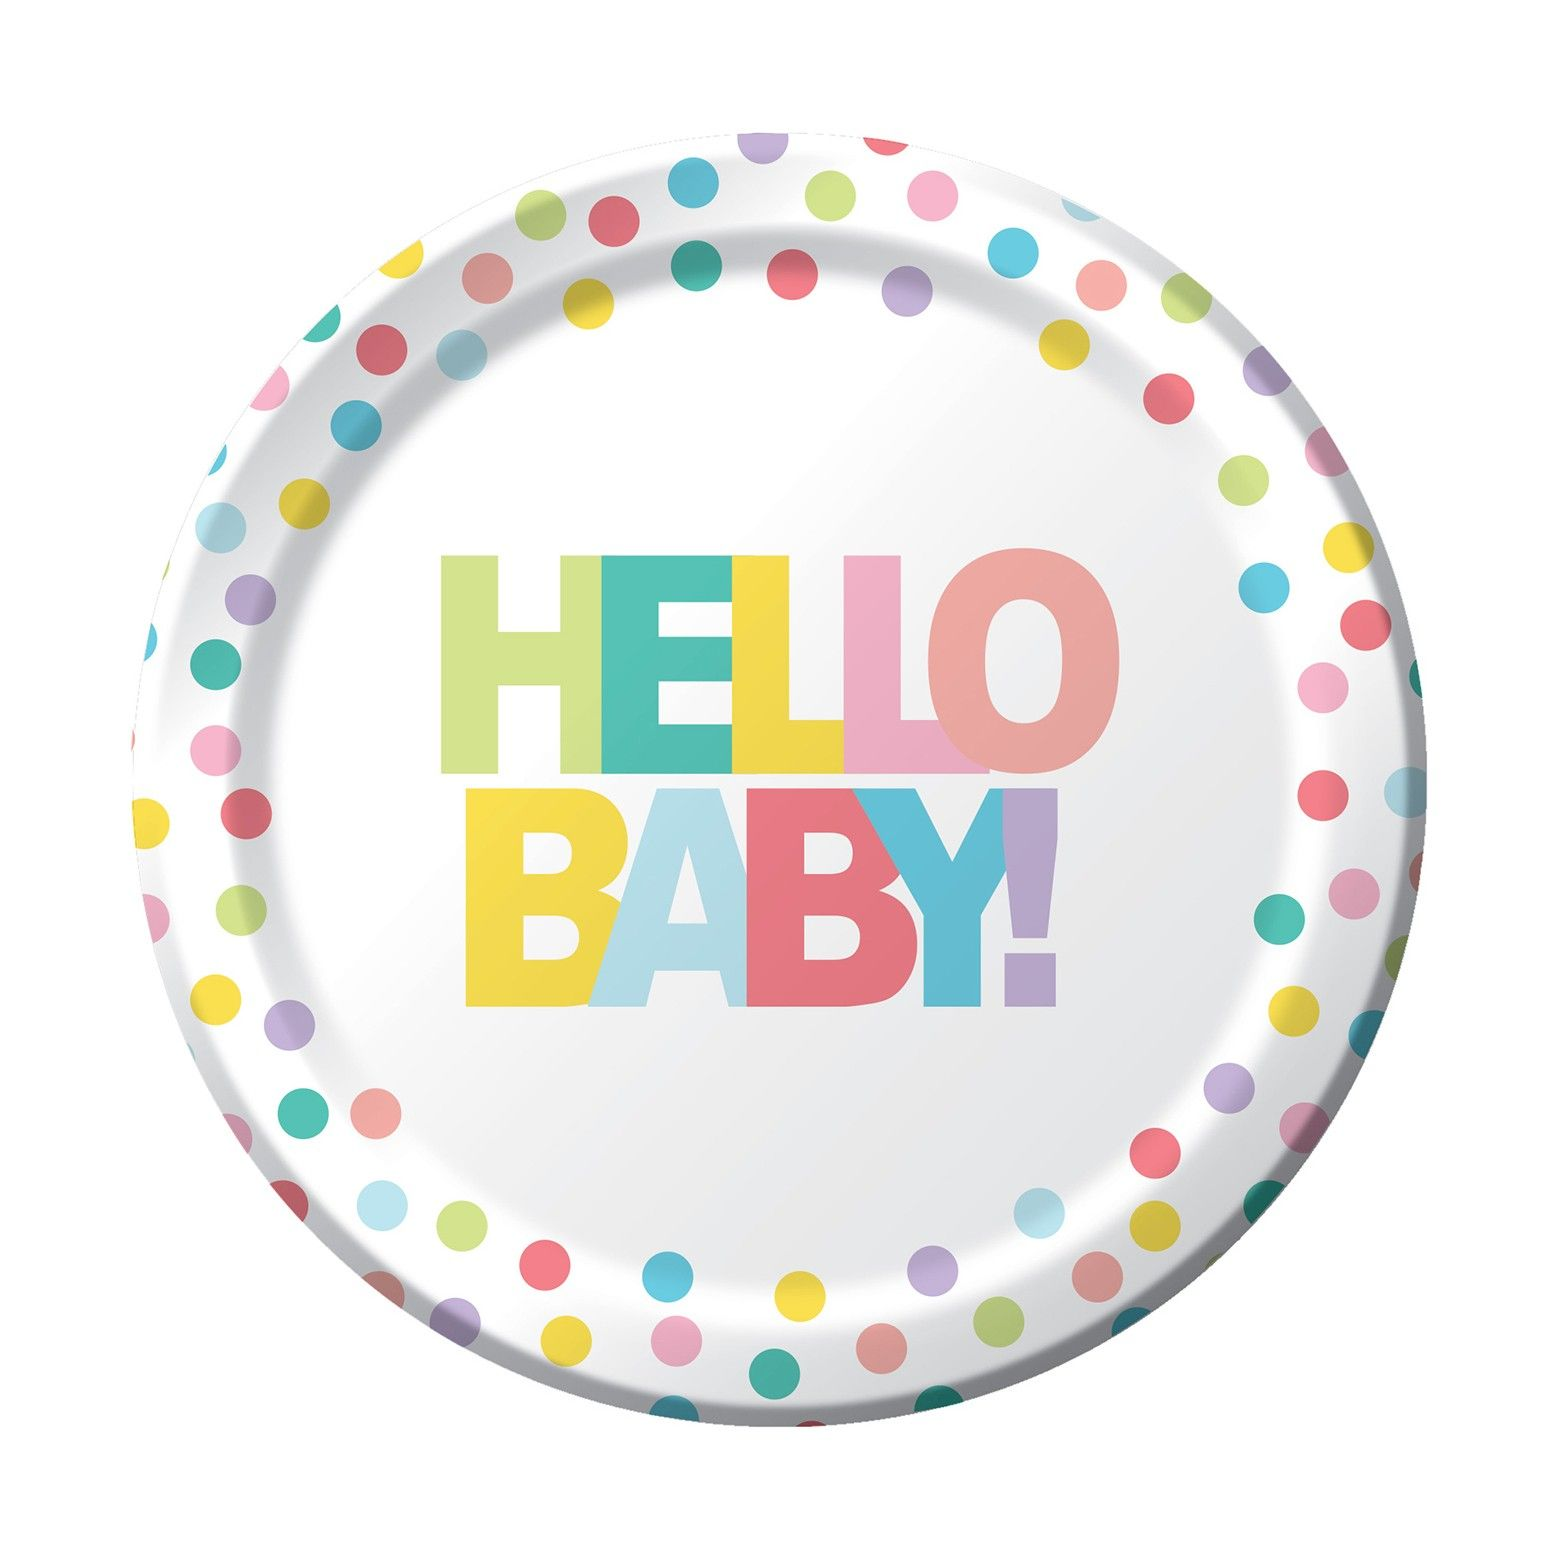 Baby Shower Party Supplies · Celebrate the mommy-to-be and her baby with these Multicolored Hello Baby Printed  sc 1 st  Pinterest & Celebrate the mommy-to-be and her baby with these Multicolored Hello ...